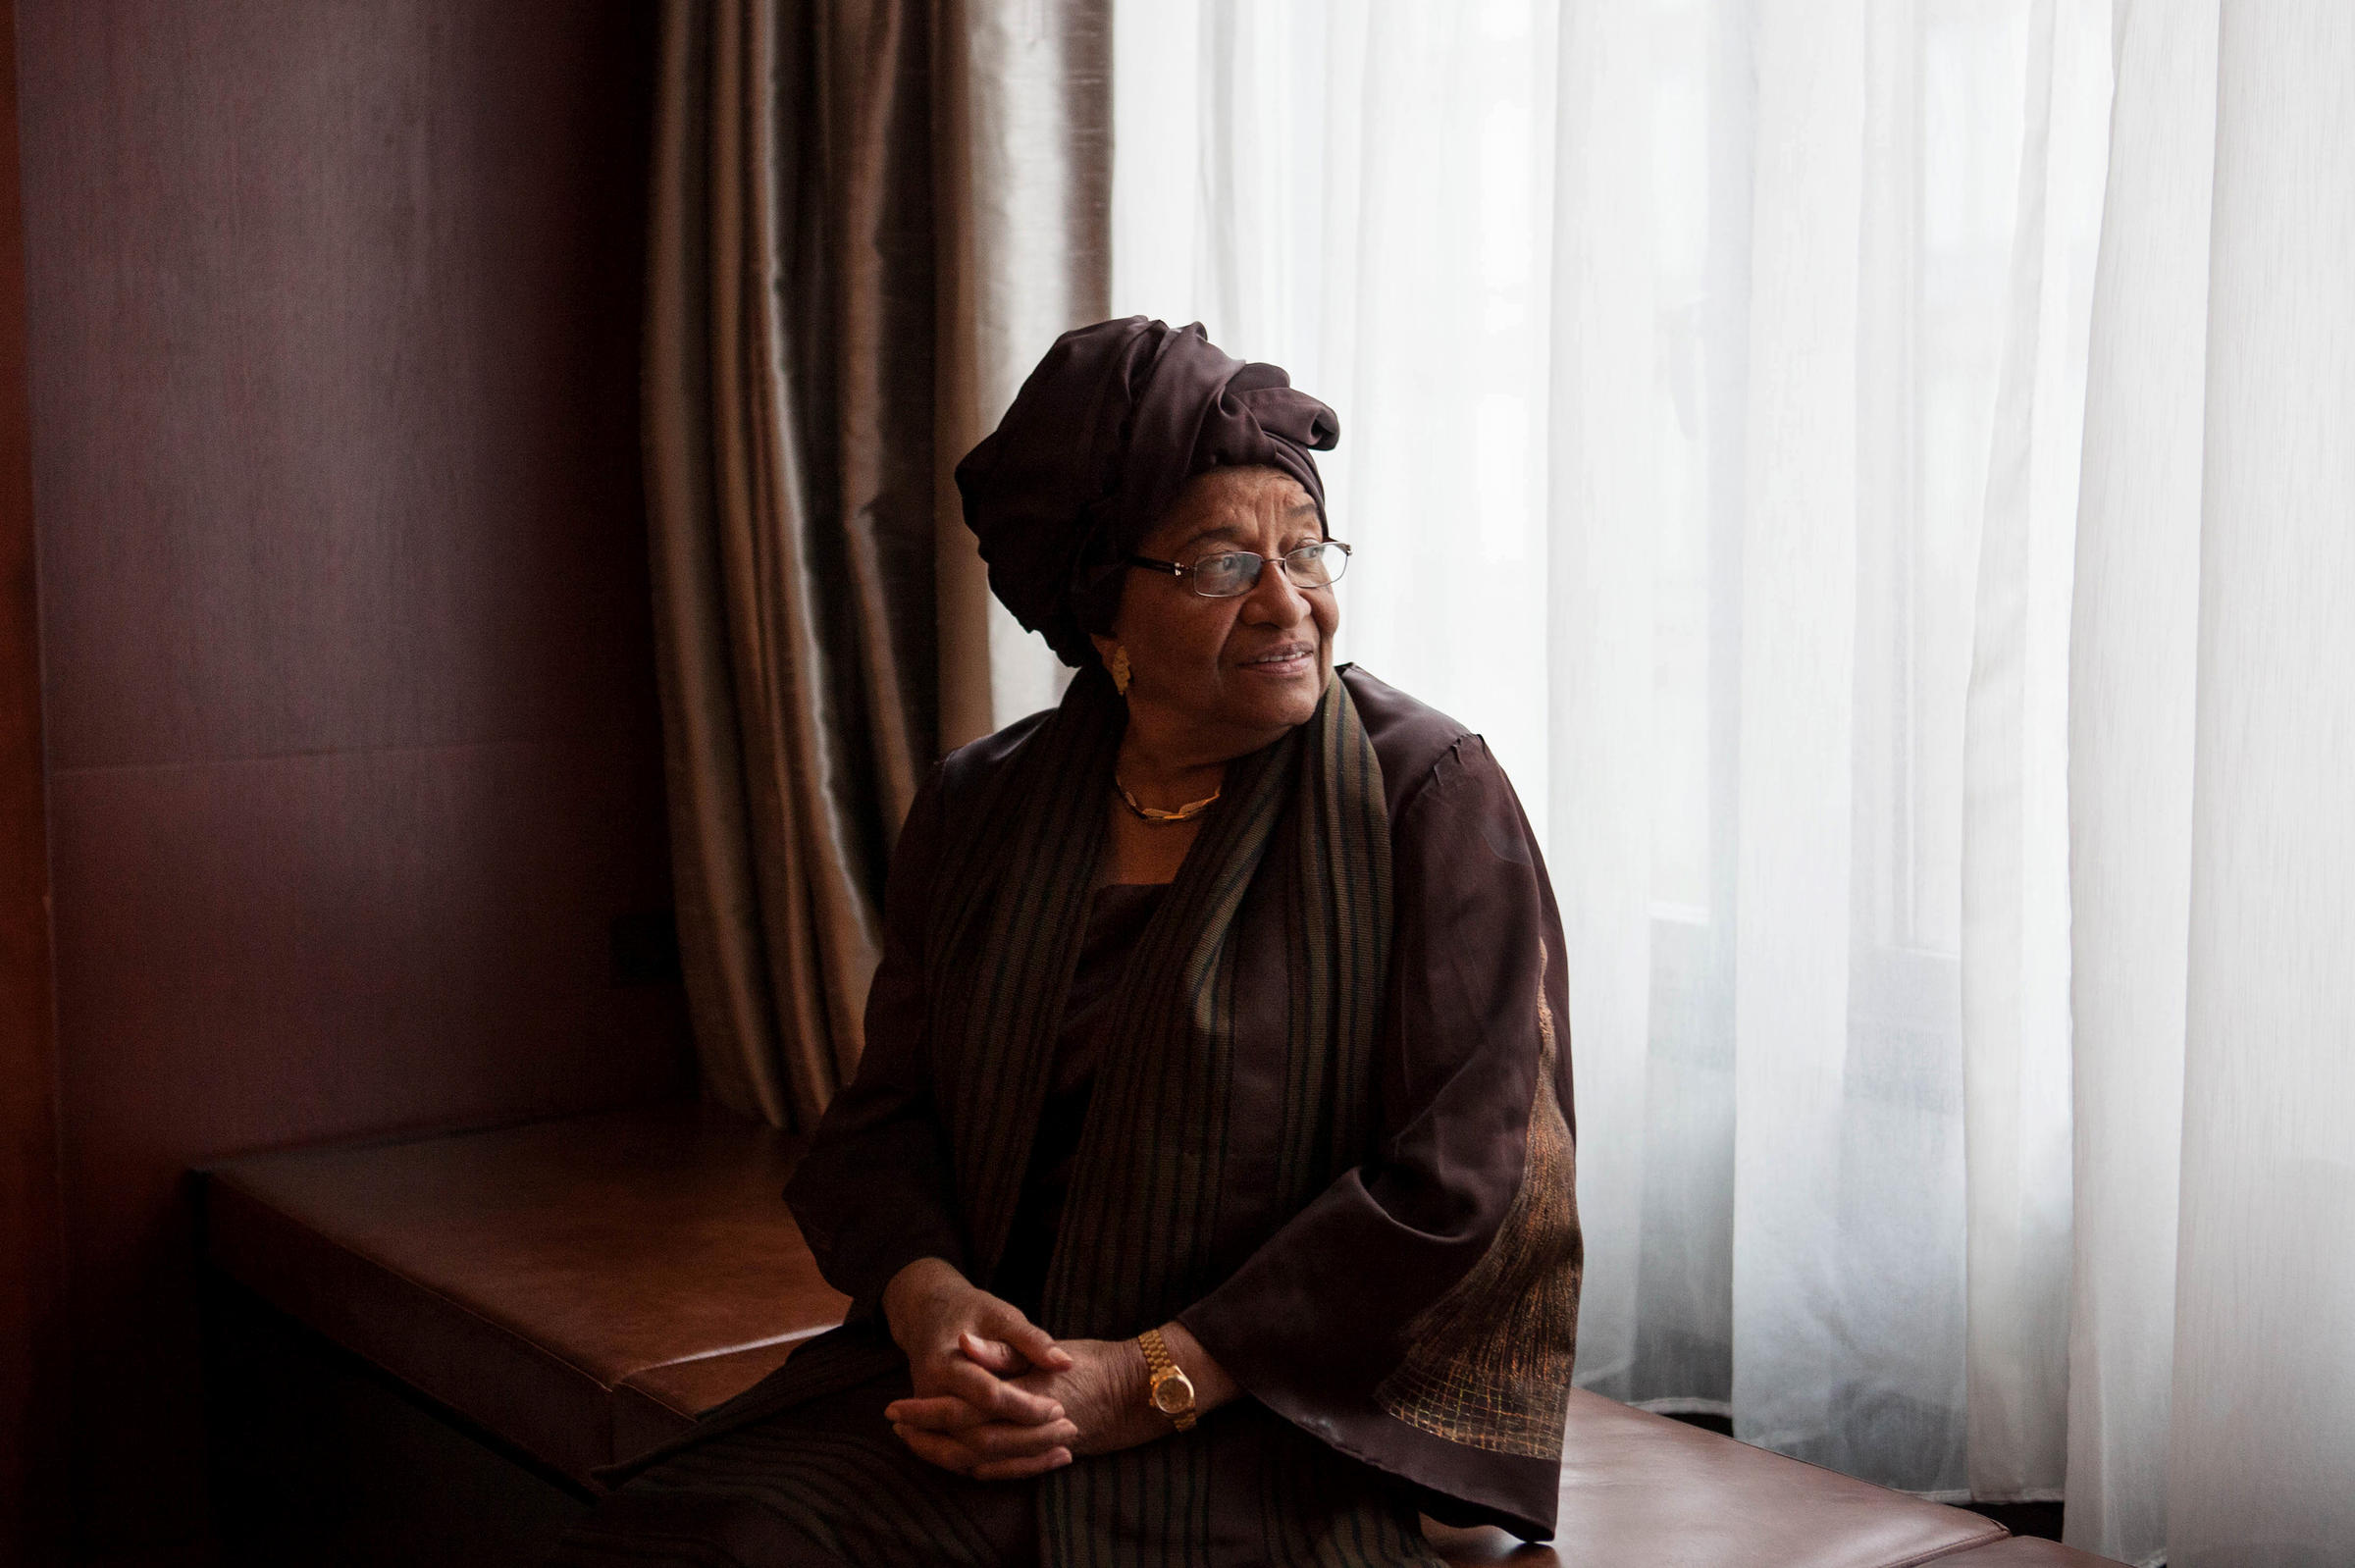 essay on ellen johnson sirleaf The paradise papers show how africa's elite avoid taxes abroad as they do at home ellen johnson sirleaf.